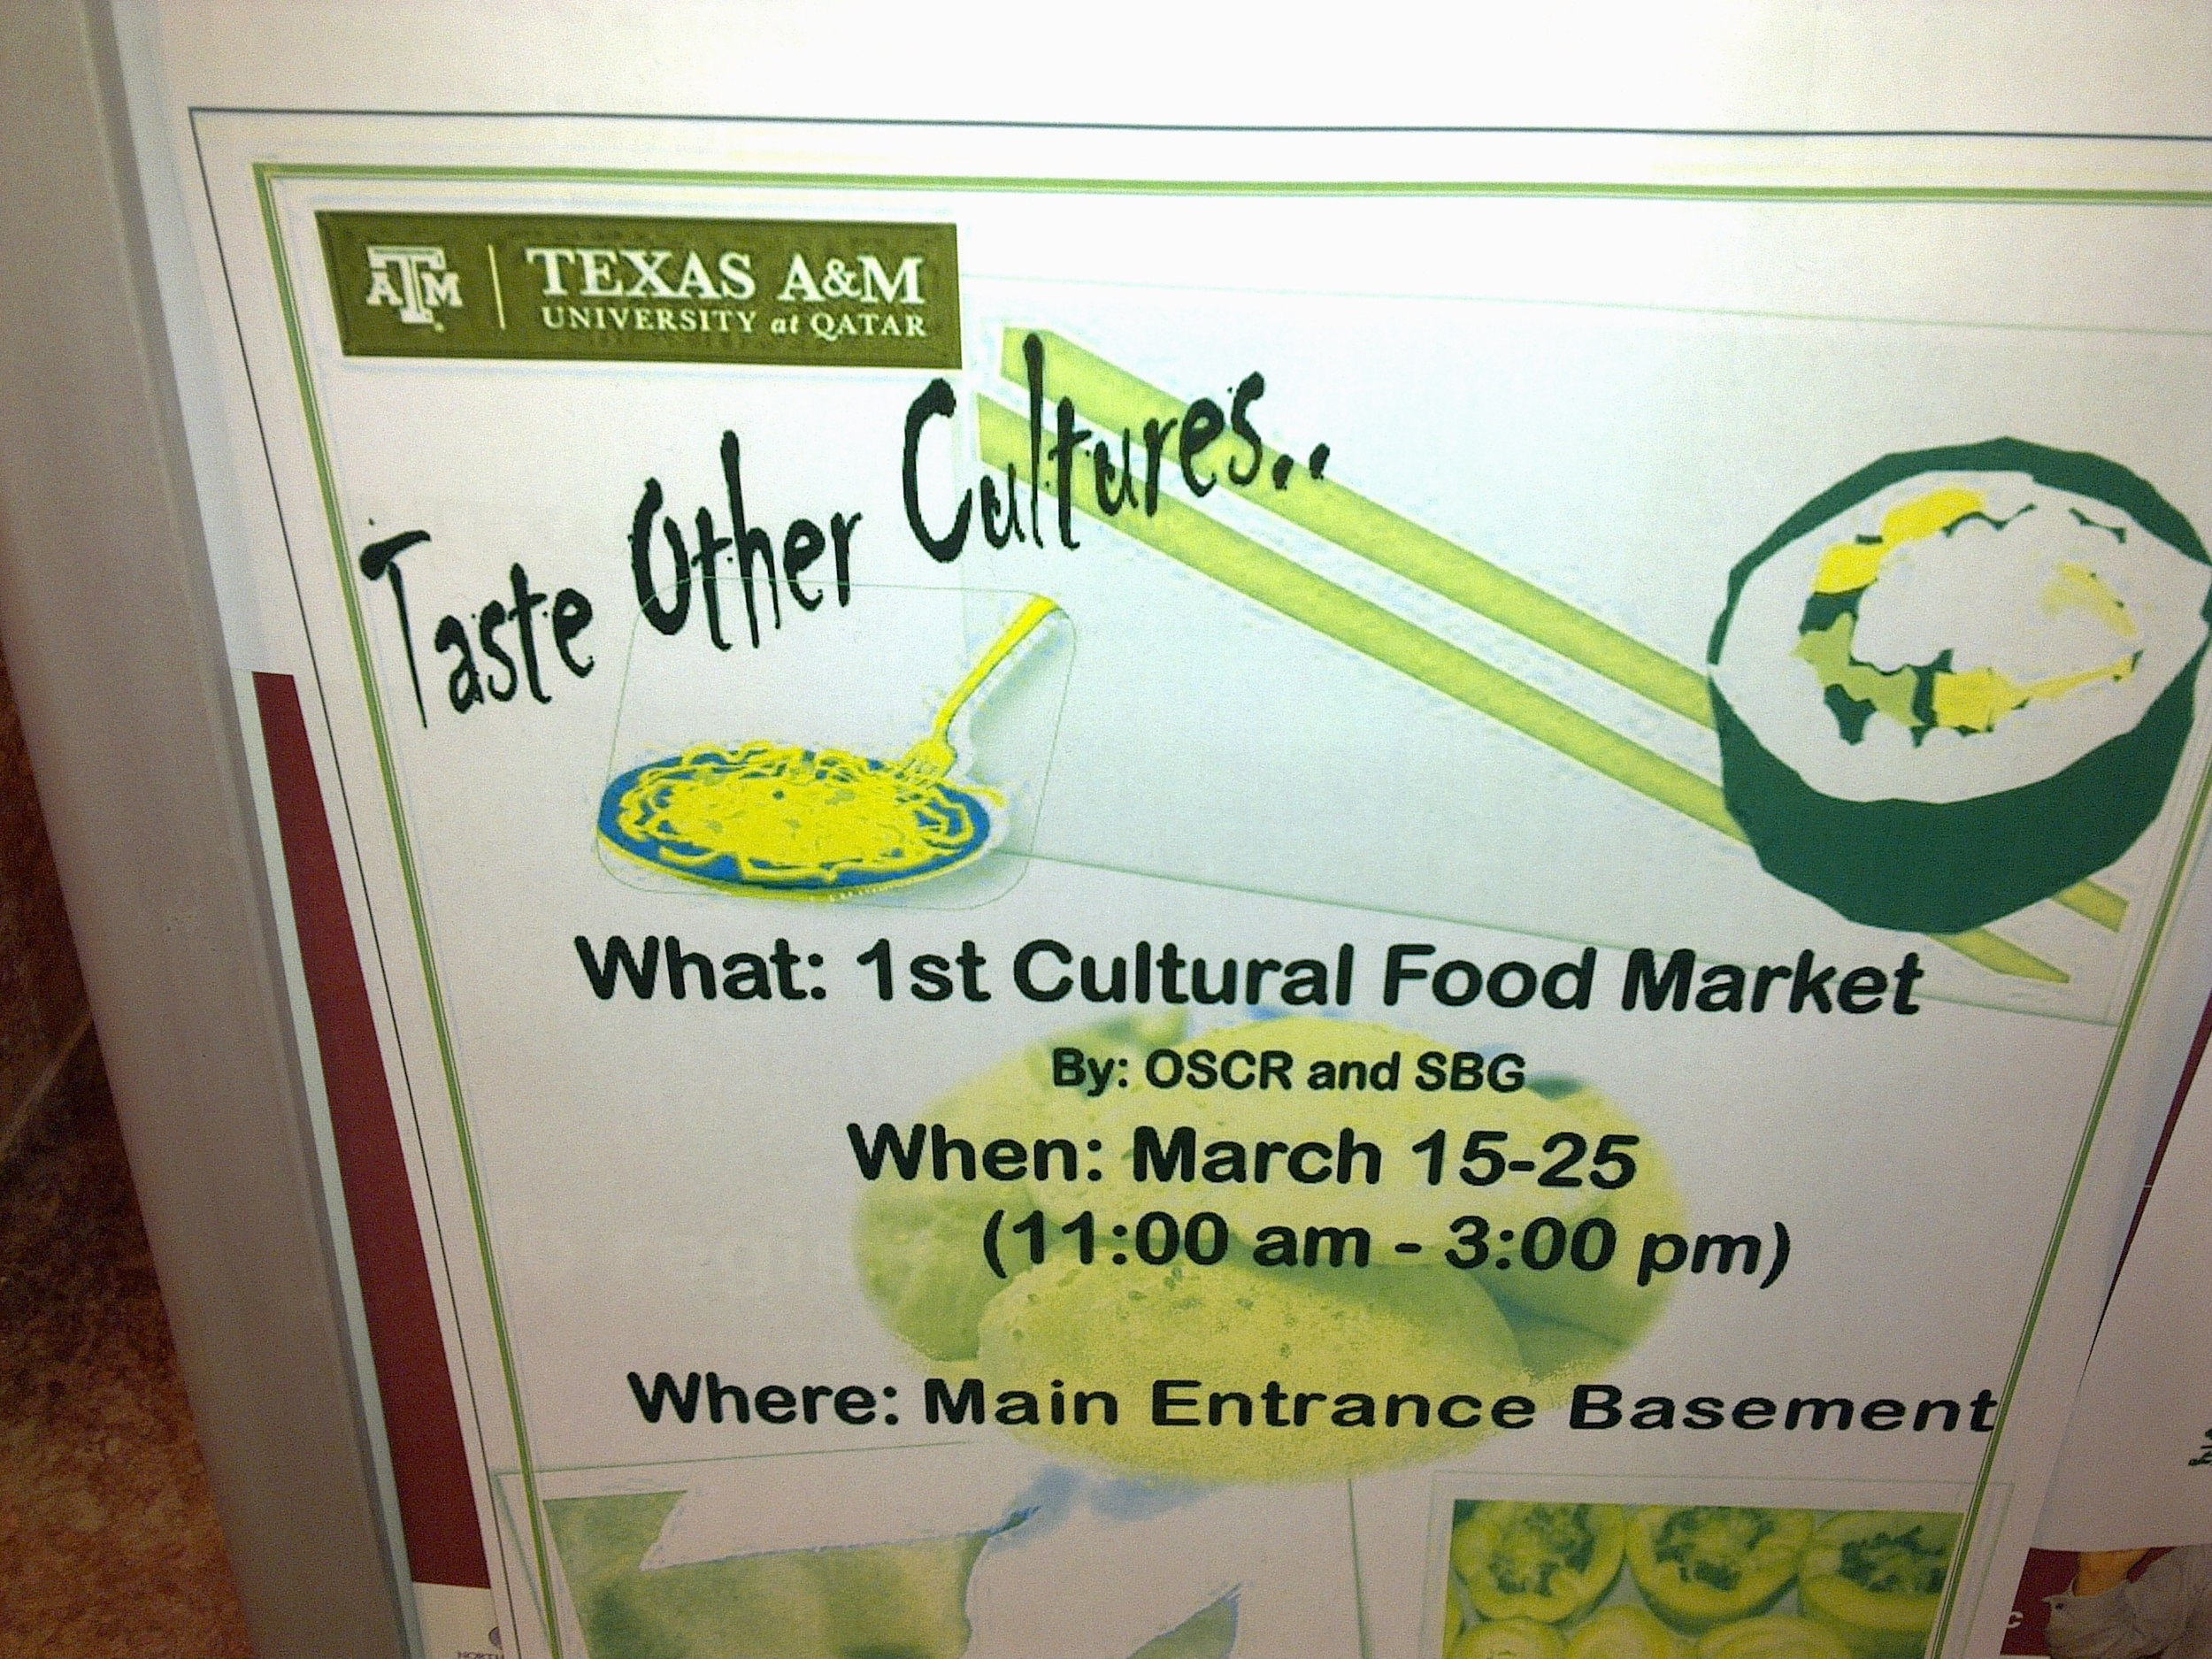 Taste other cultures? really?